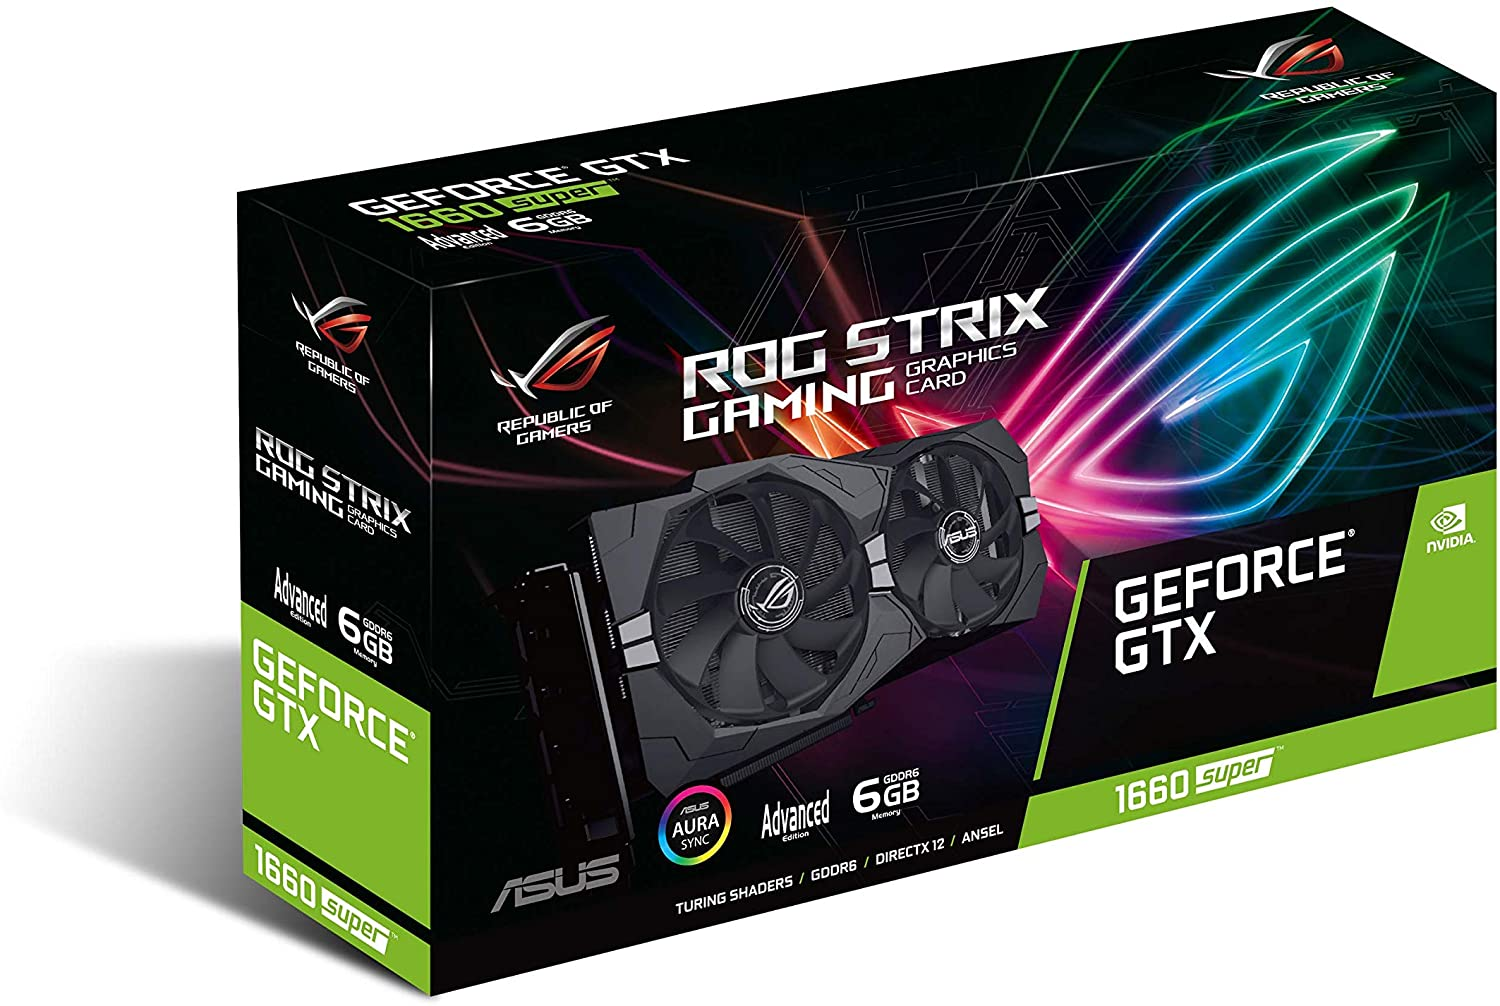 ASUS ROG Strix 1660 Super